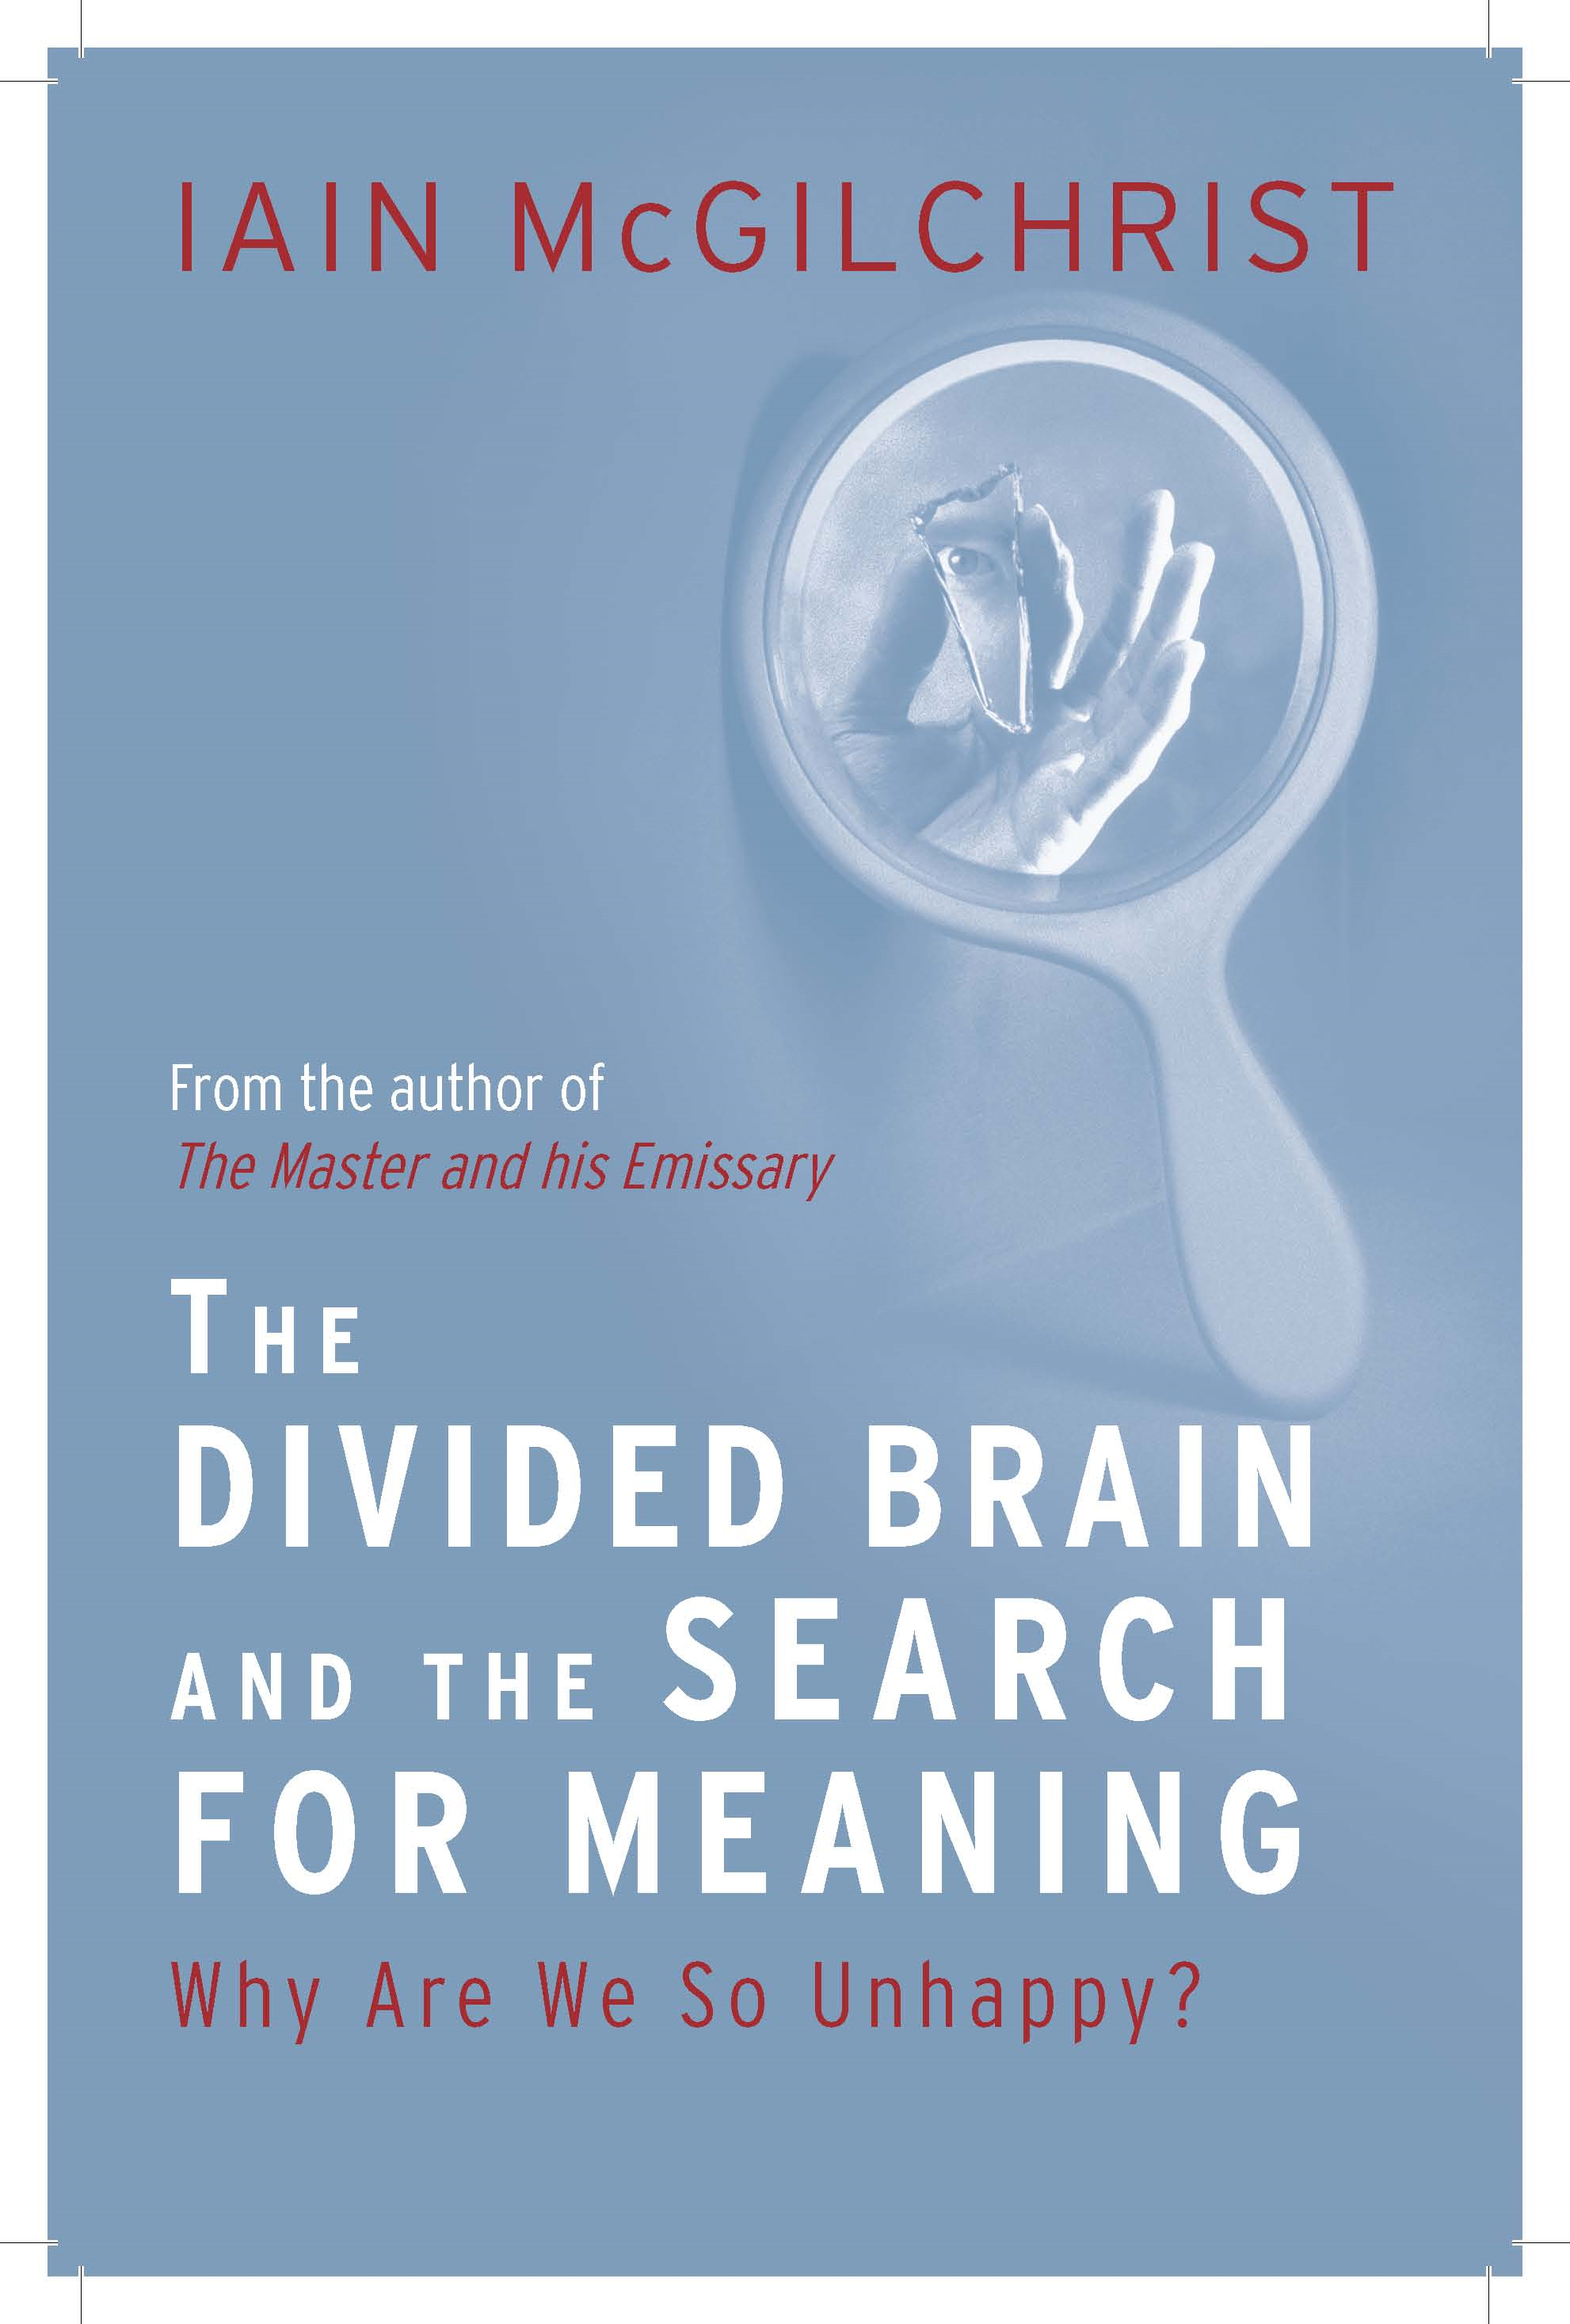 The Divided Brain and the Search for Meaning: Why We Are So Unhappy By: Iain McGilchrist